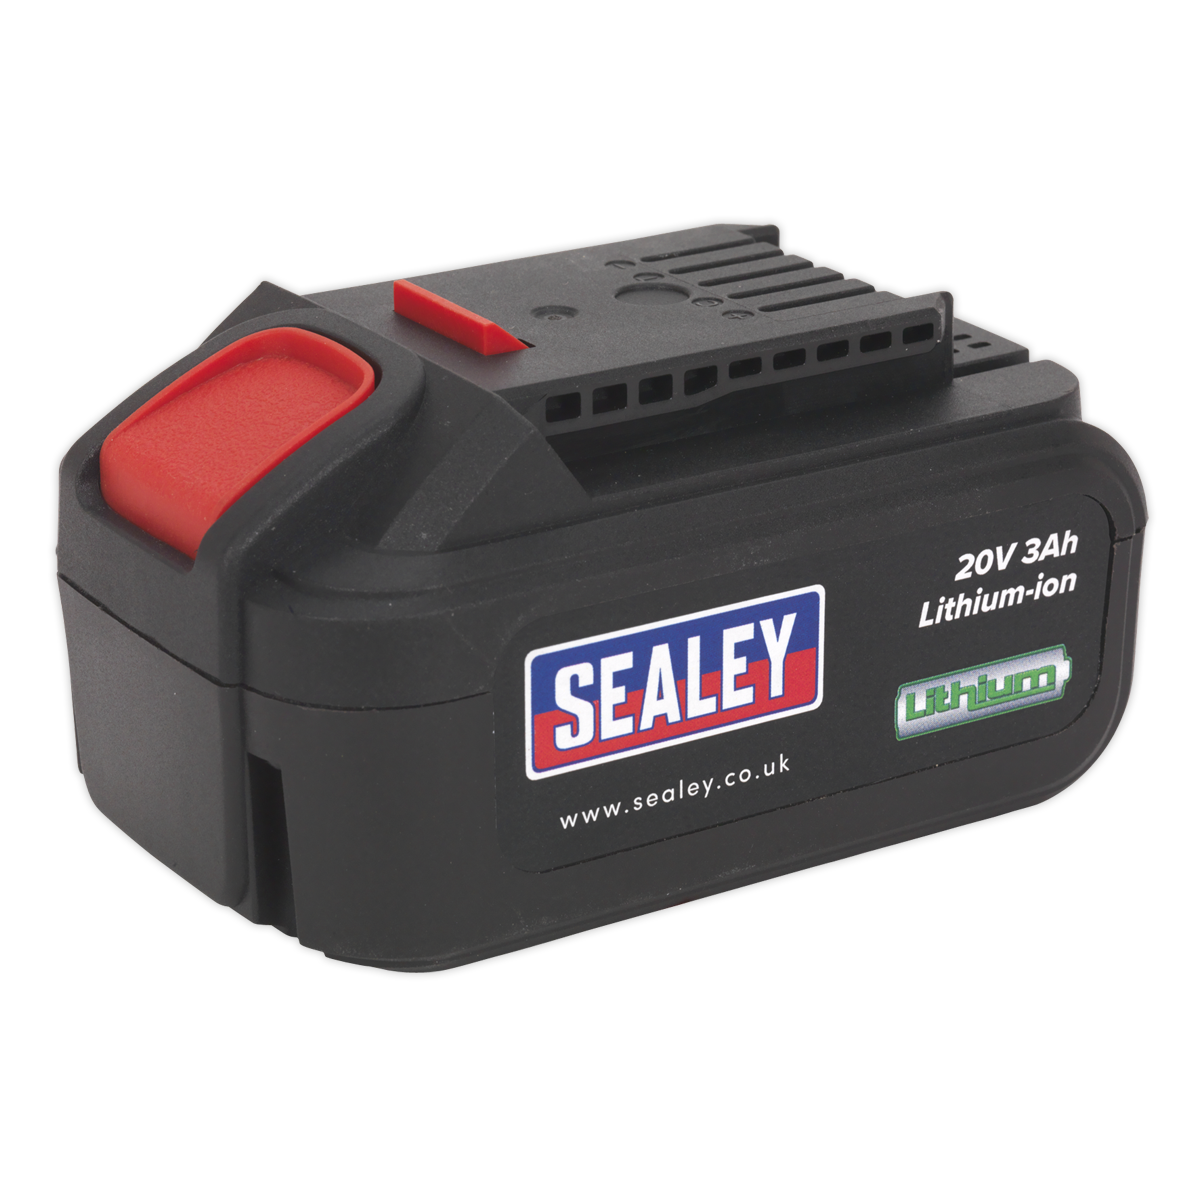 Power Tool Battery 20V 3Ah Lithium-ion for CP20V Series   SEALEY CP20VBP by Seal